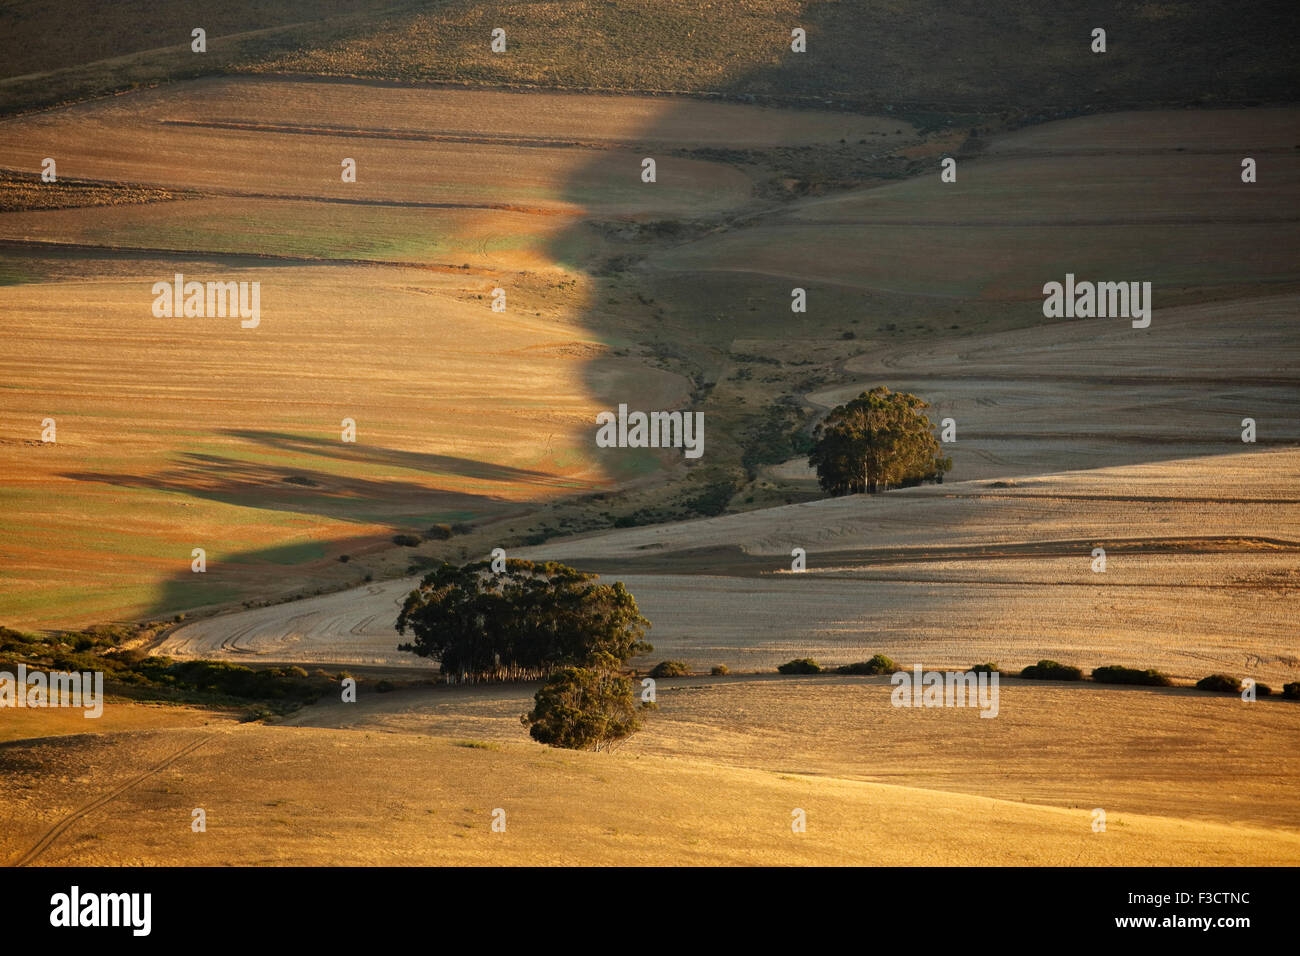 rolling farmland in the Overberg region near Villiersdorp, Western Cap, South Africa - Stock Image